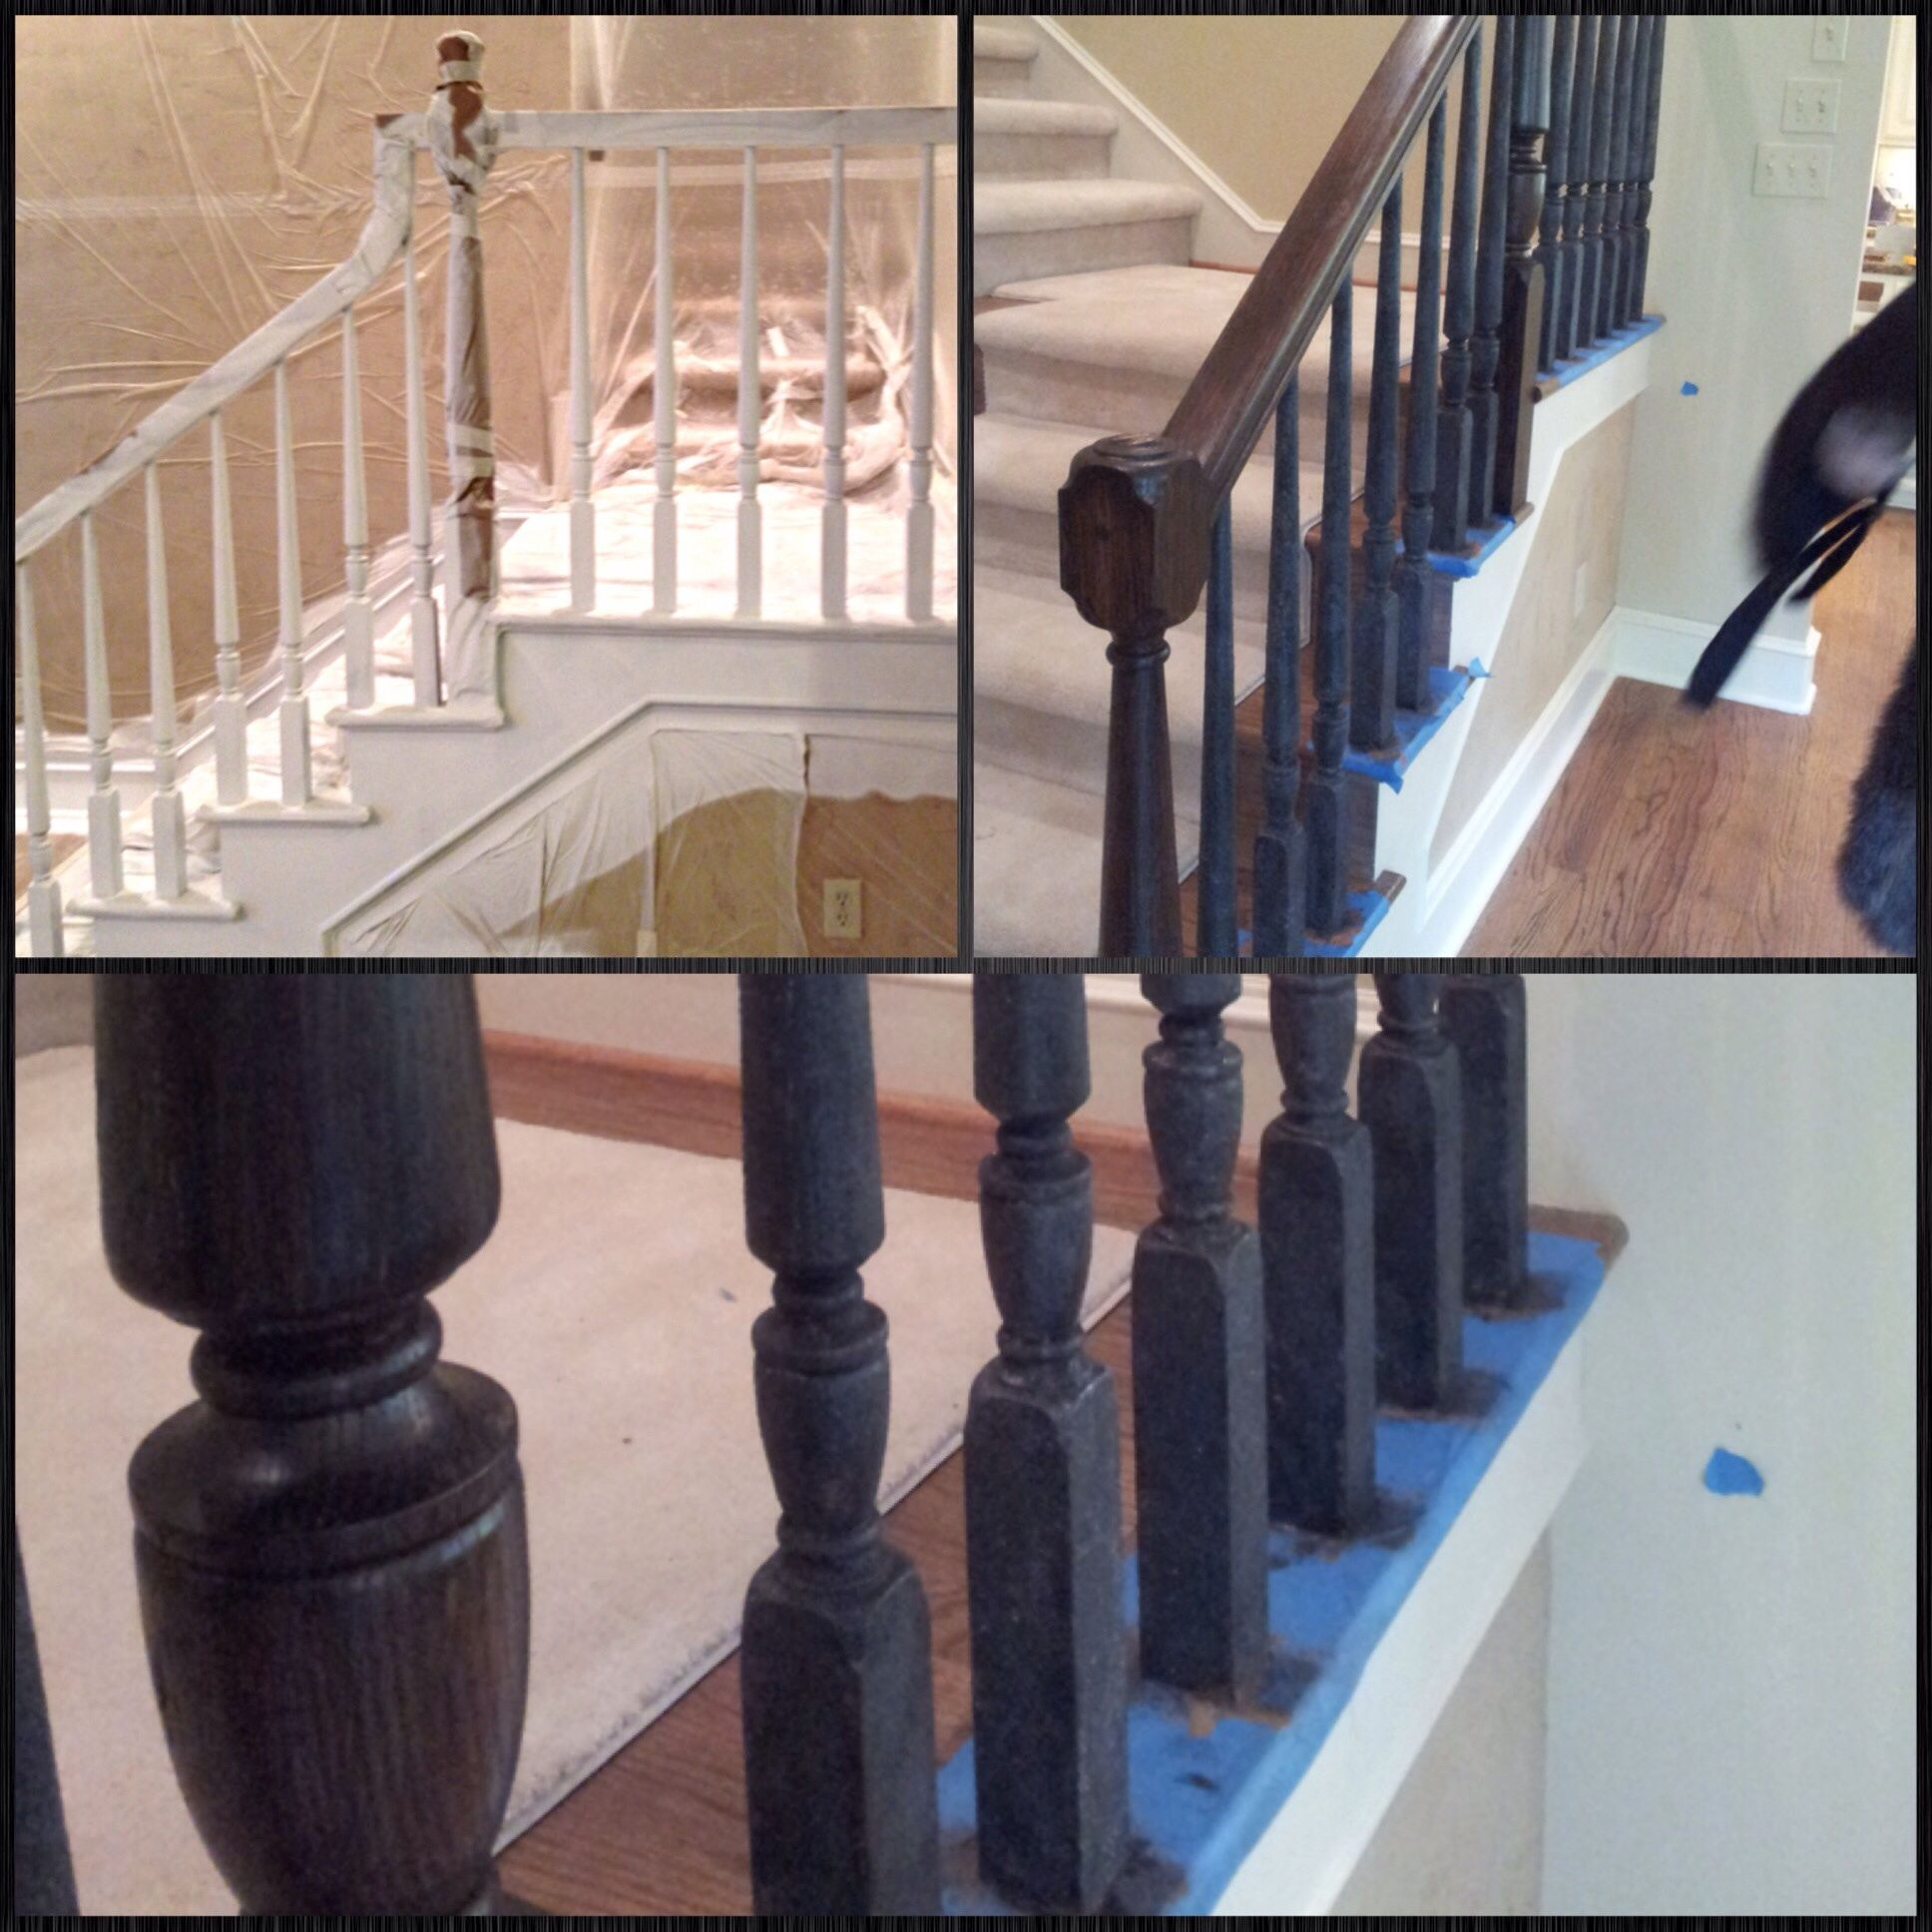 Faux Iron And Mahogany Stair Railing Stair Railing | Mahogany Handrails For Stairs